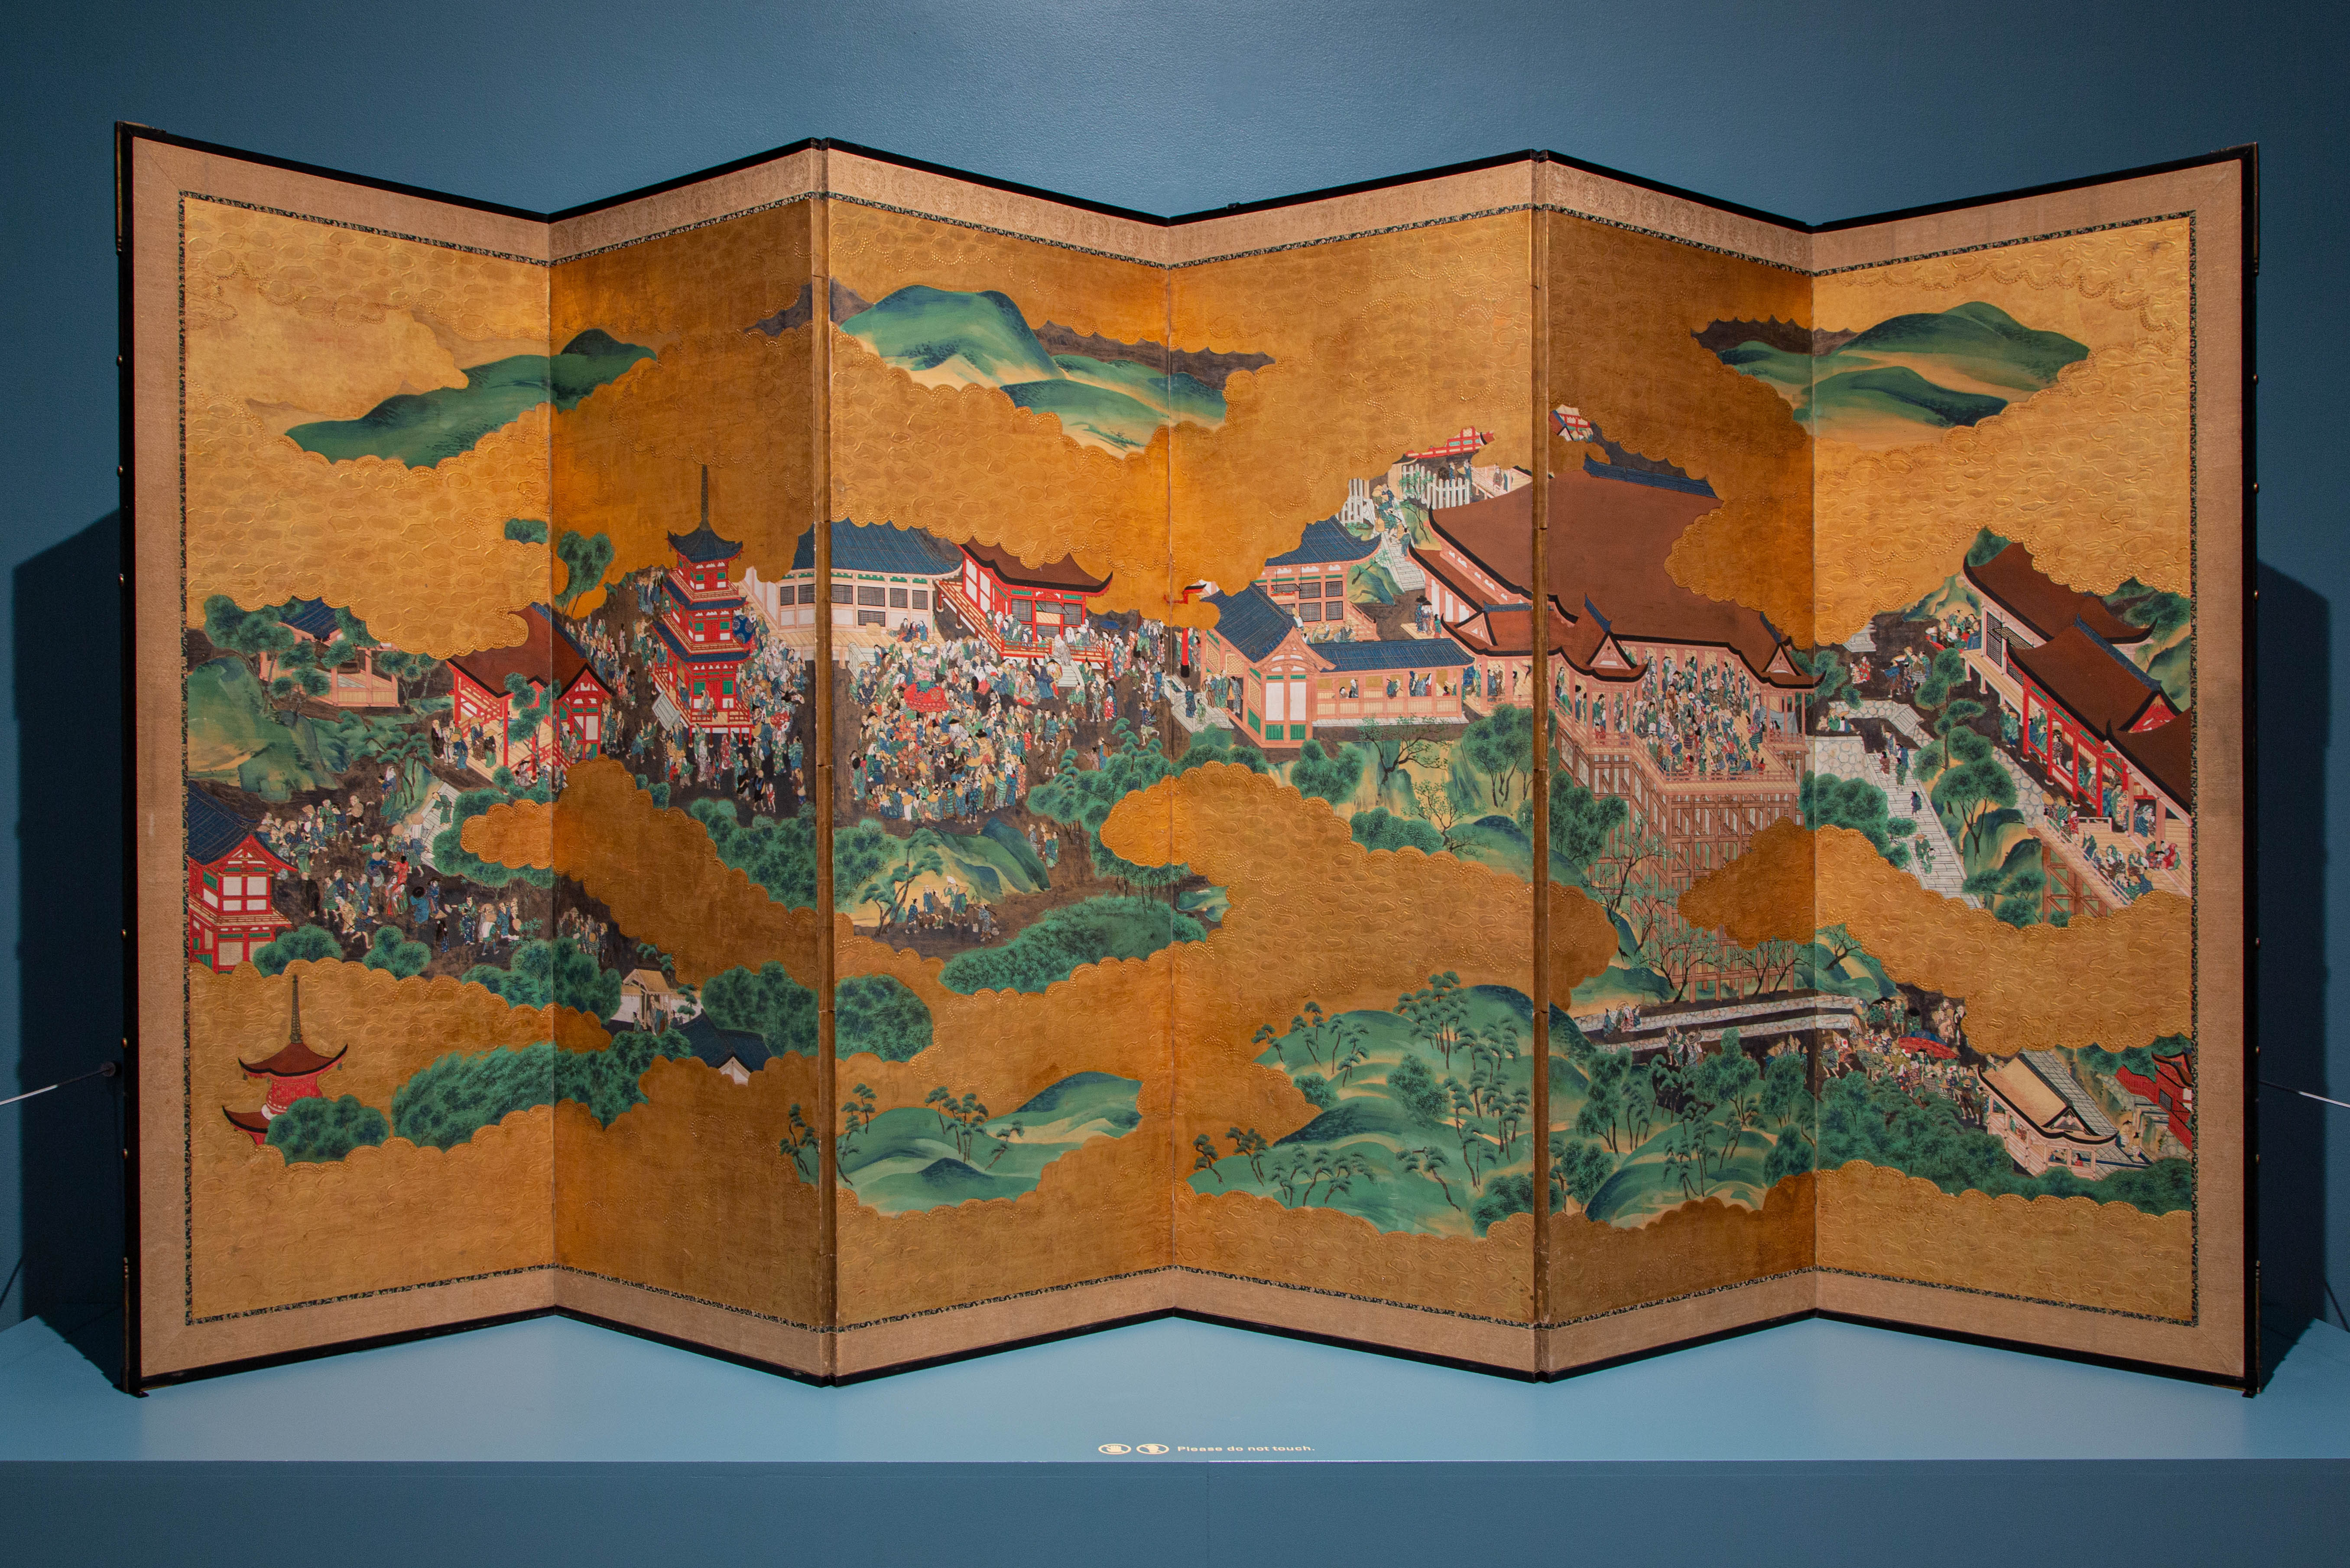 The Kiyomizu Temple, 1825 Japanese ink, gouache, paper, wood, silk, and gold leaf